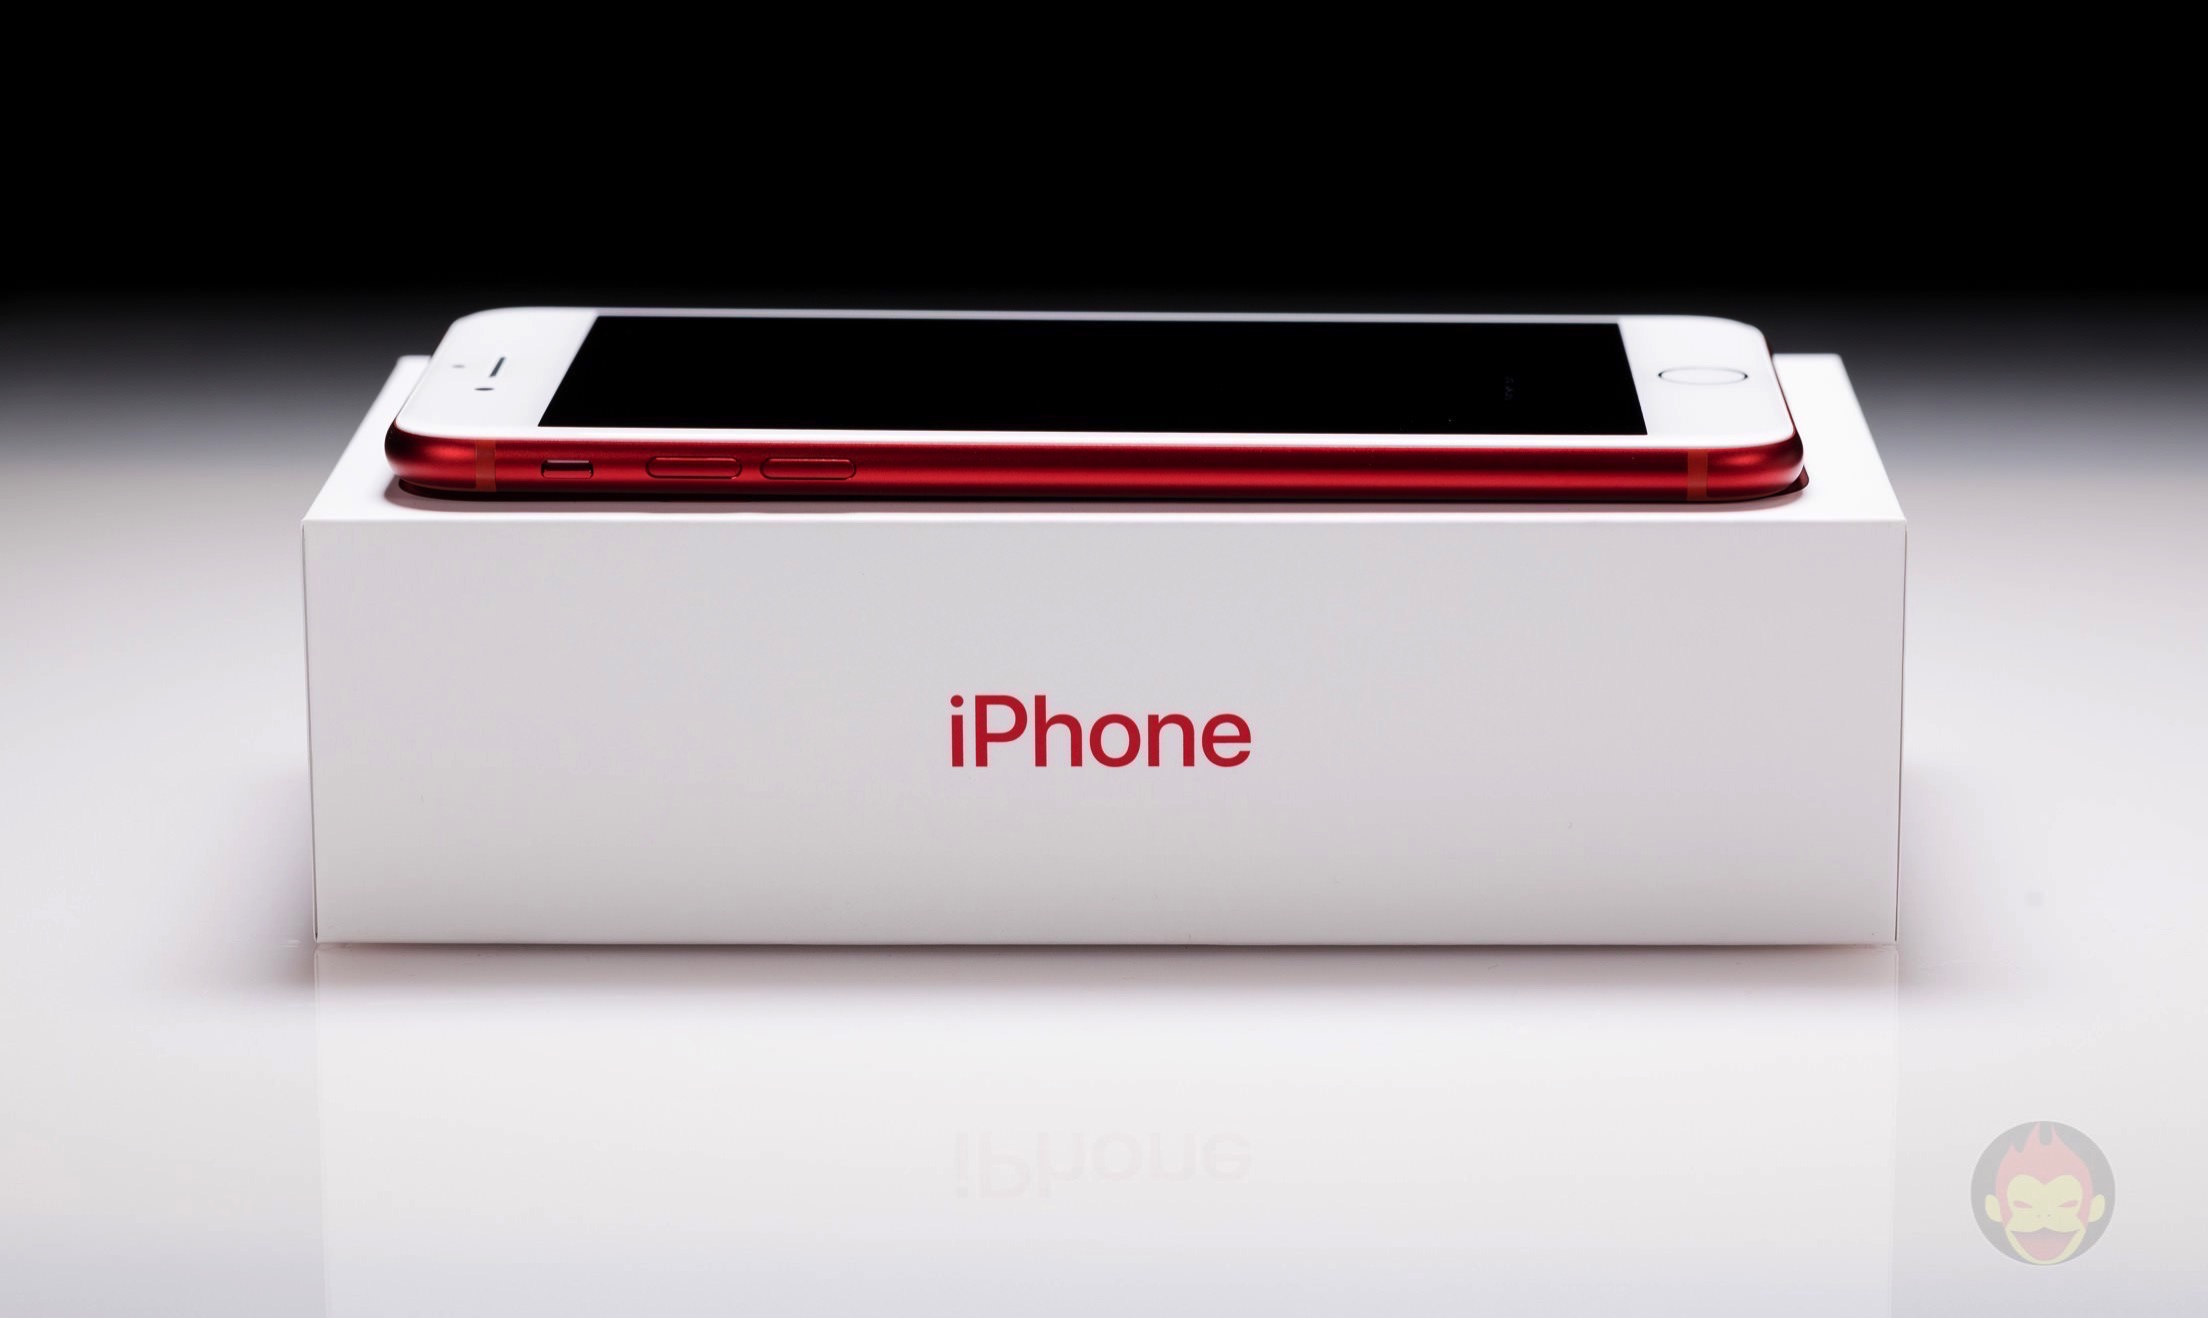 iPhone-7-Product-Red-Special-Edition-15.jpg